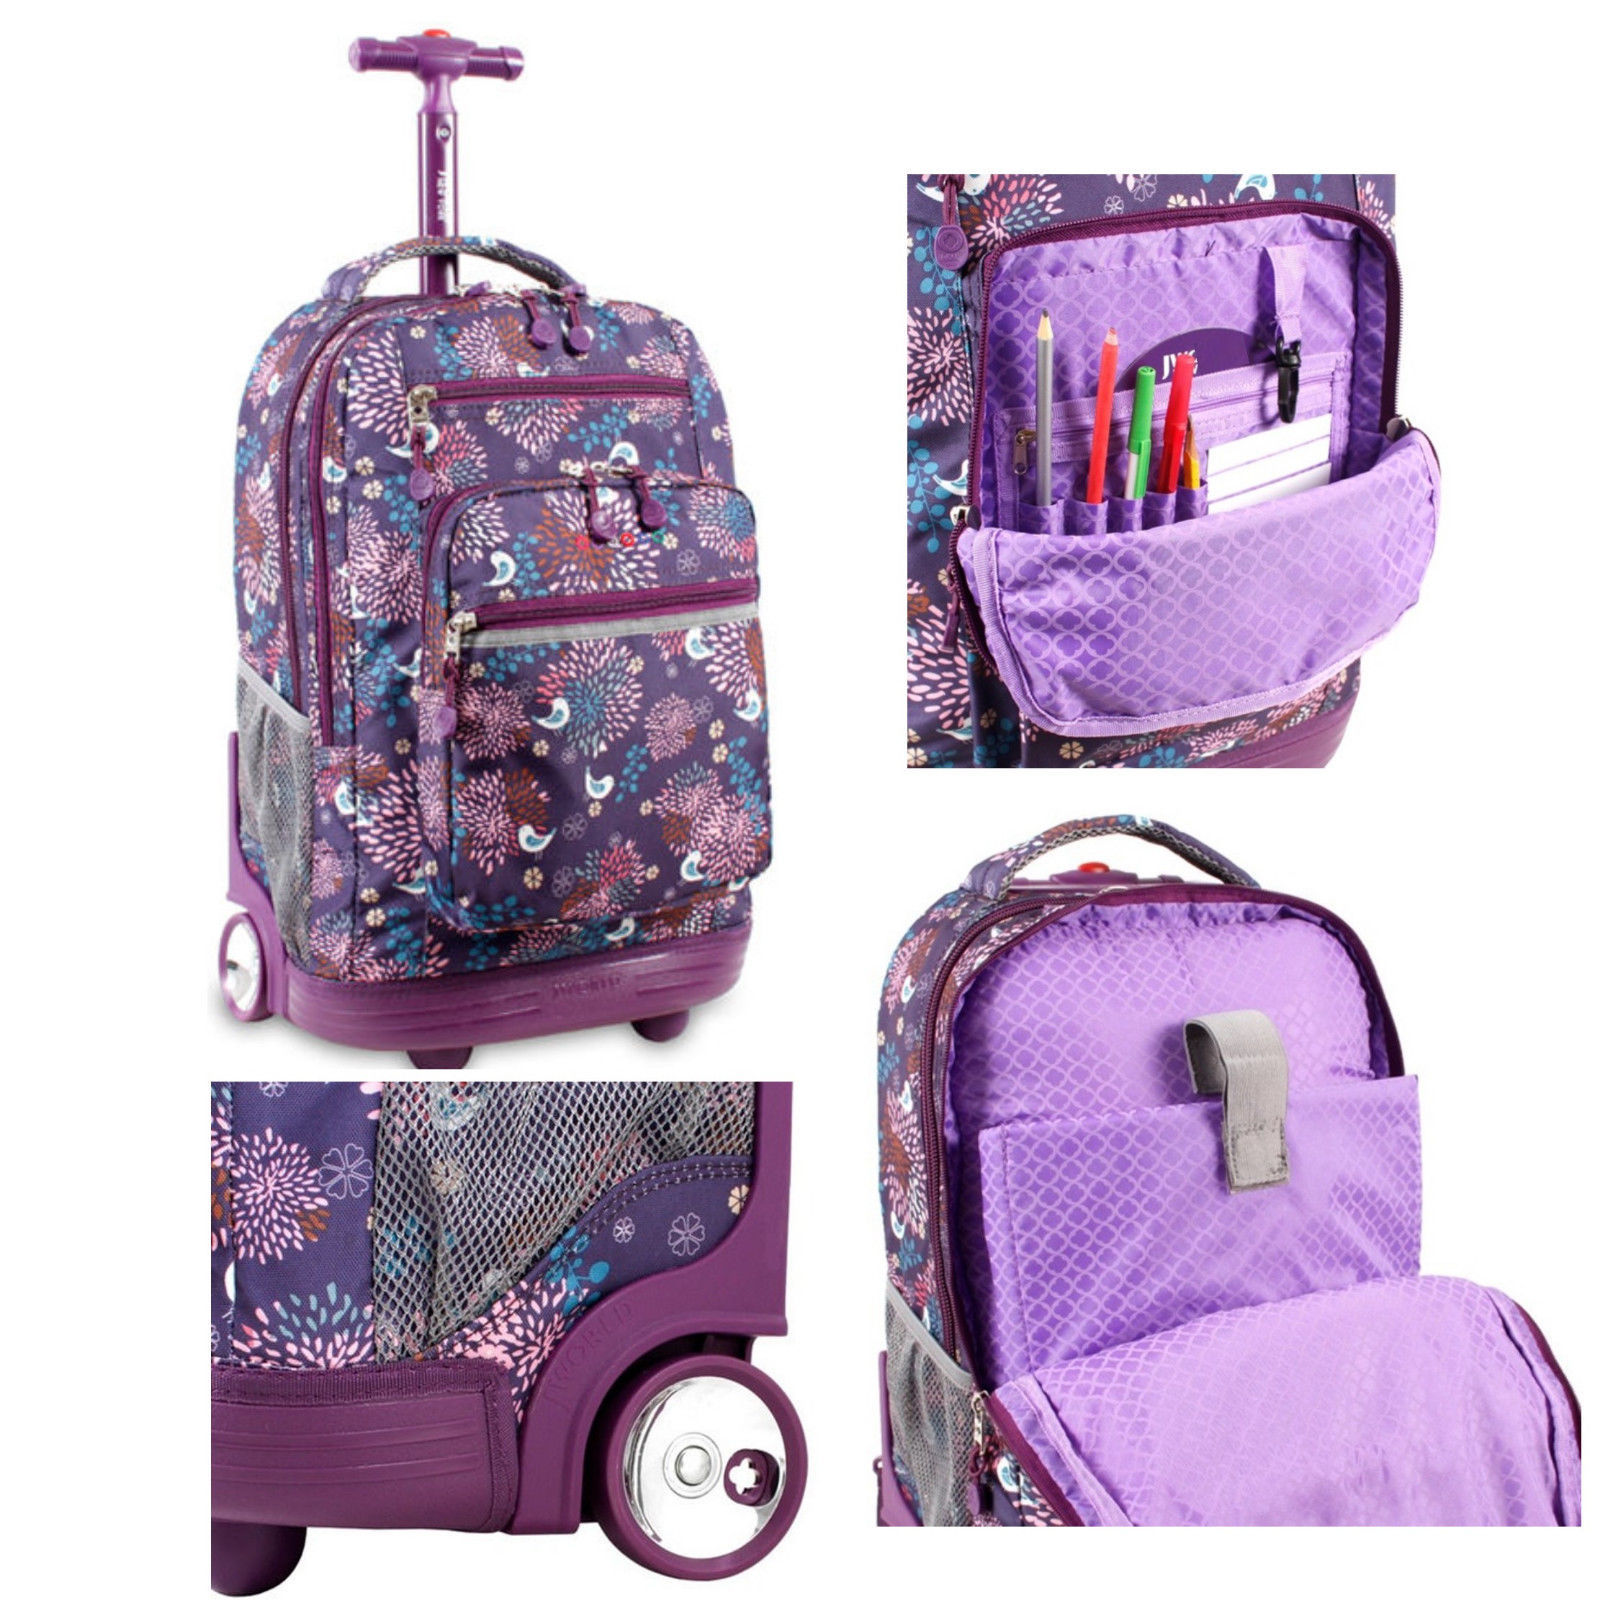 FEWOFJ Teen Girl School Backpack with Lunch Box Pencil Case, 3 in 1 Canvas Student Book Bag Set for Elementary Middle School Black. Sold by FastMedia. $ $ BLUBOON Canvas Backpack Girls School Bags Set for Teens, Bookbags + Shoulder bag + Pouch 3 in 1 Black. Sold by ErgodE.